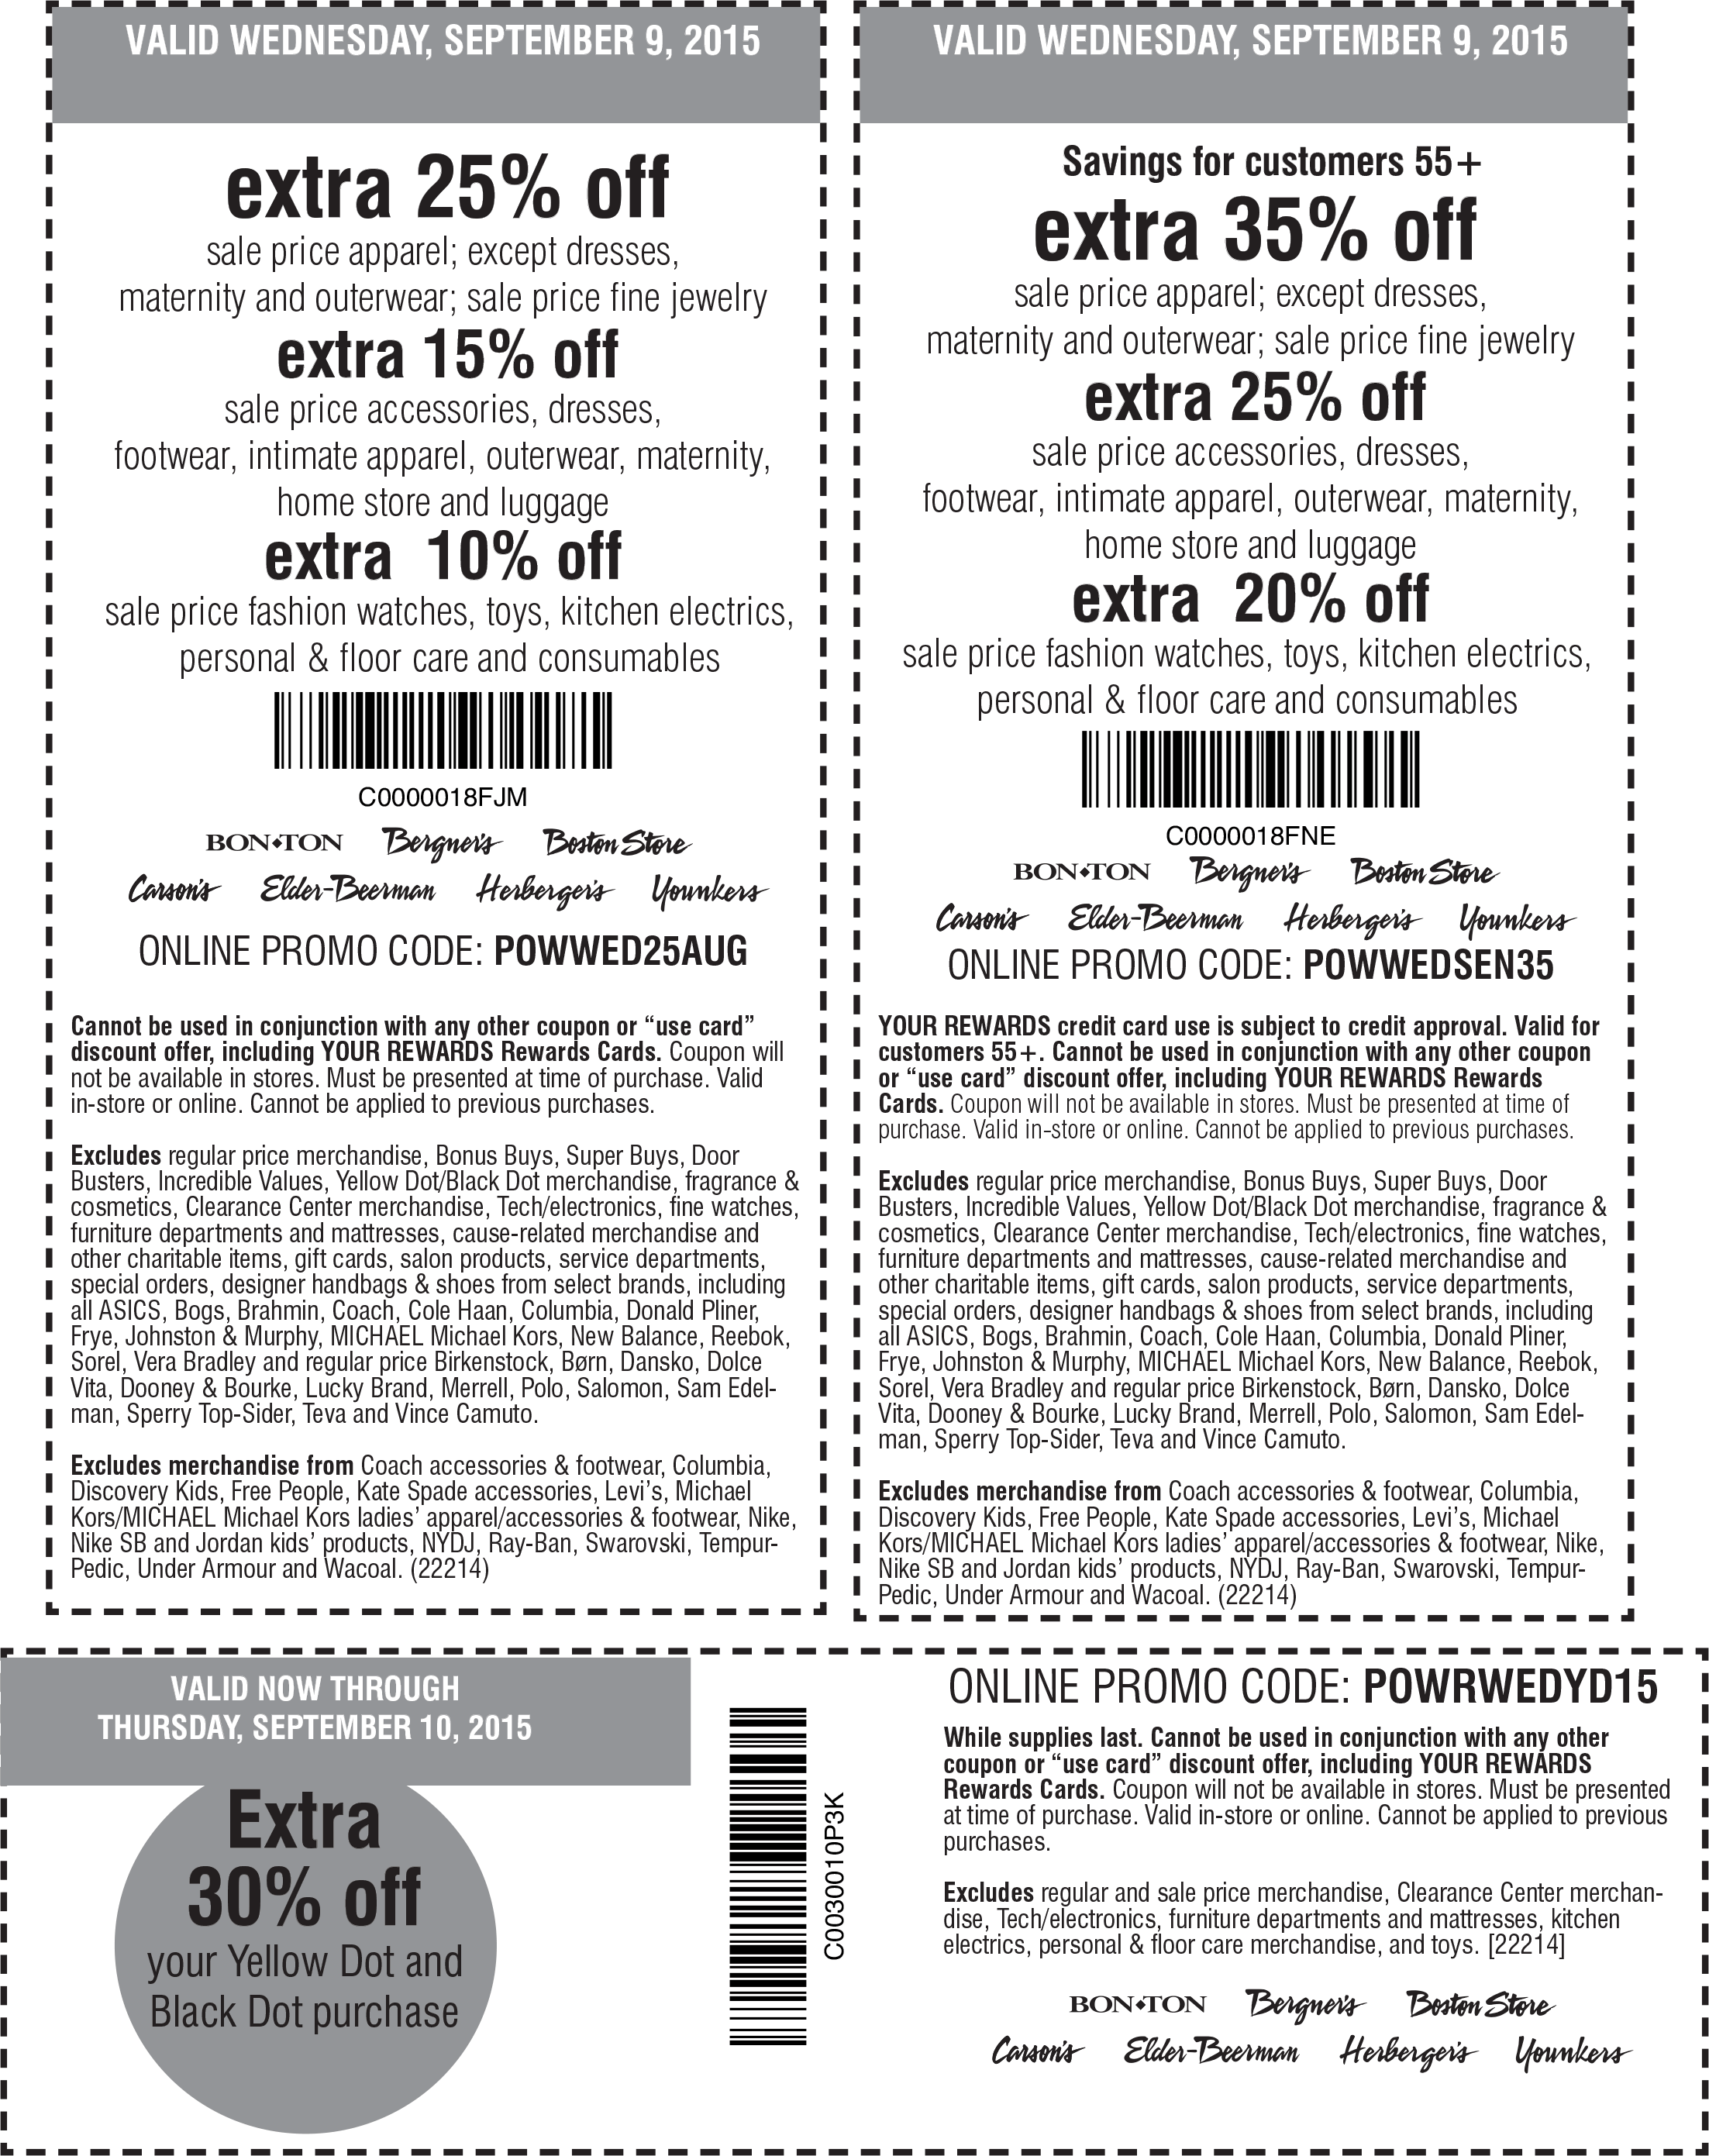 Carsons Coupon April 2017 Extra 25-35% off sale apparel & more at Carsons, Bon Ton & sister stores, or online via promo code POWWED25AUG